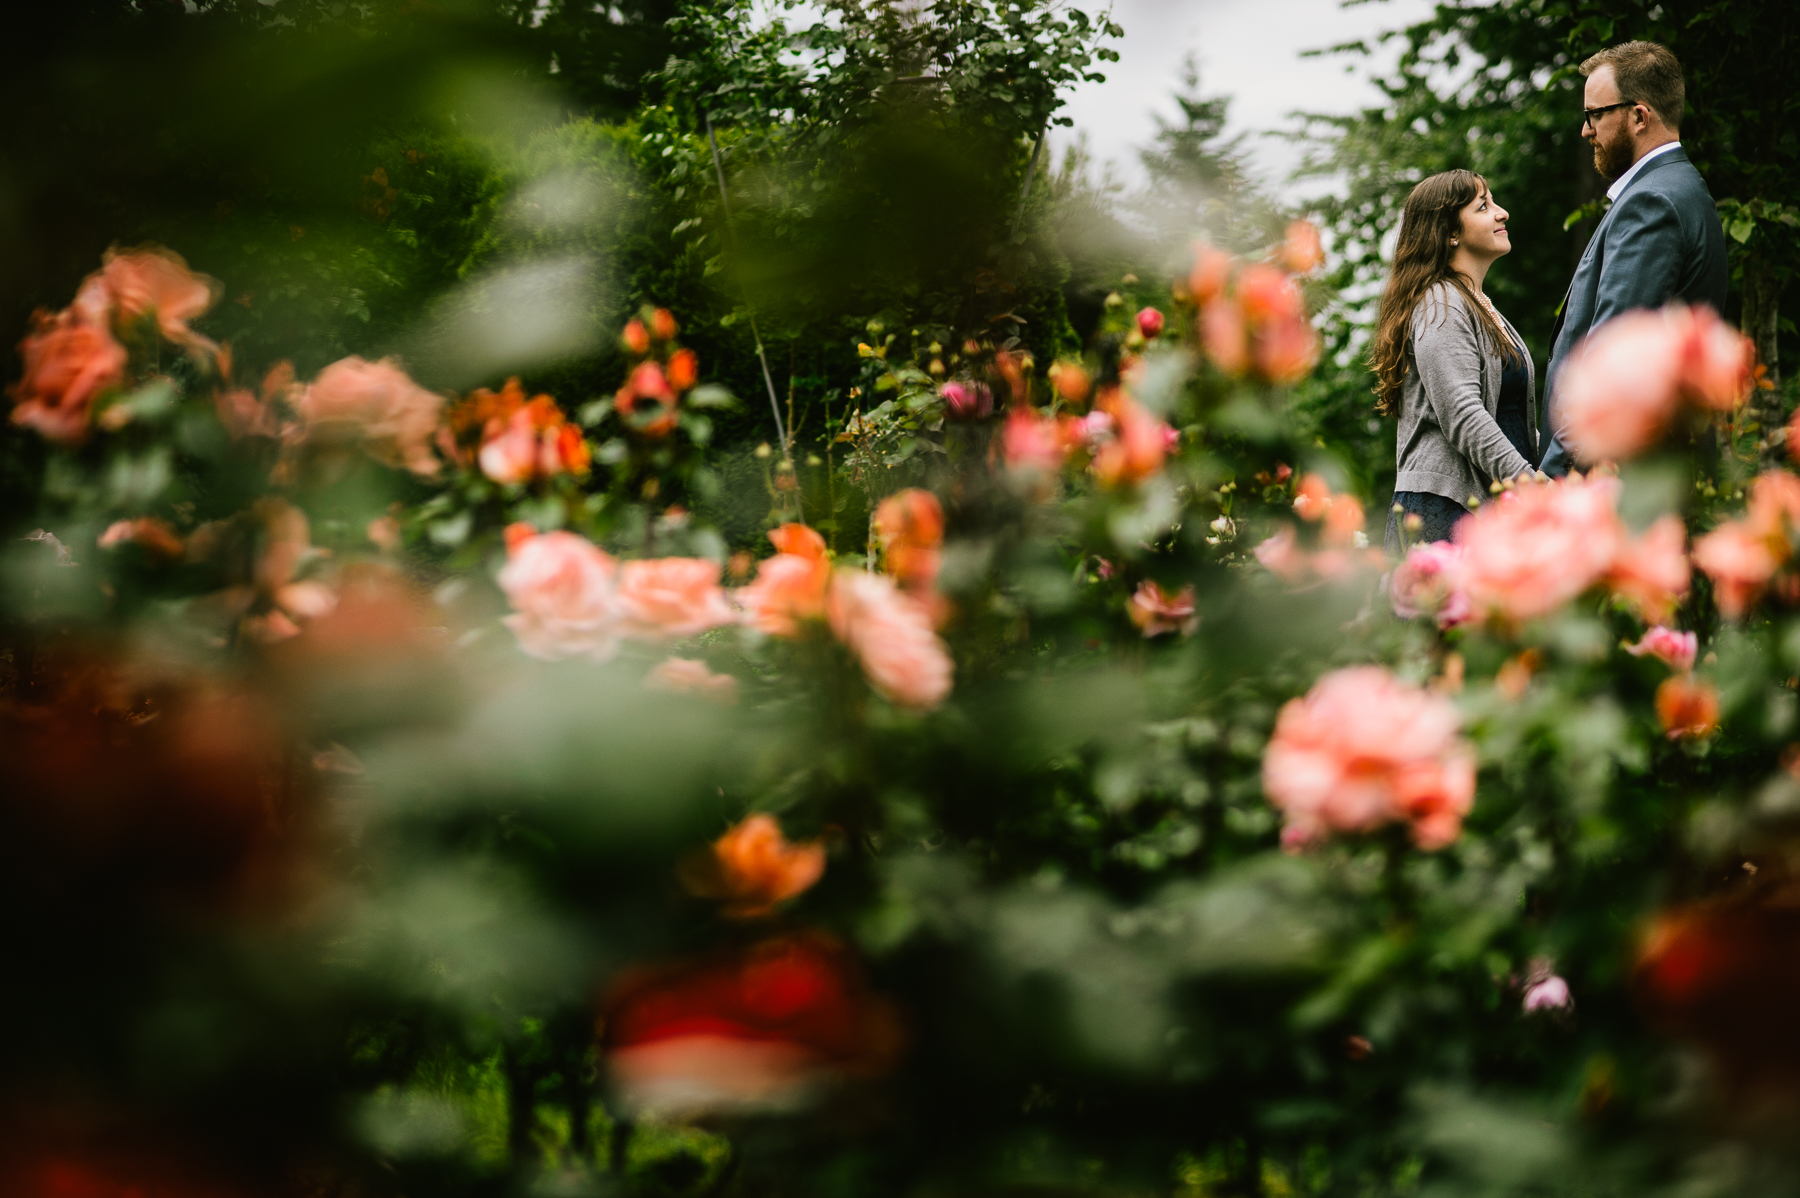 seattle-wedding-photographer-engagement-sessions-best-19